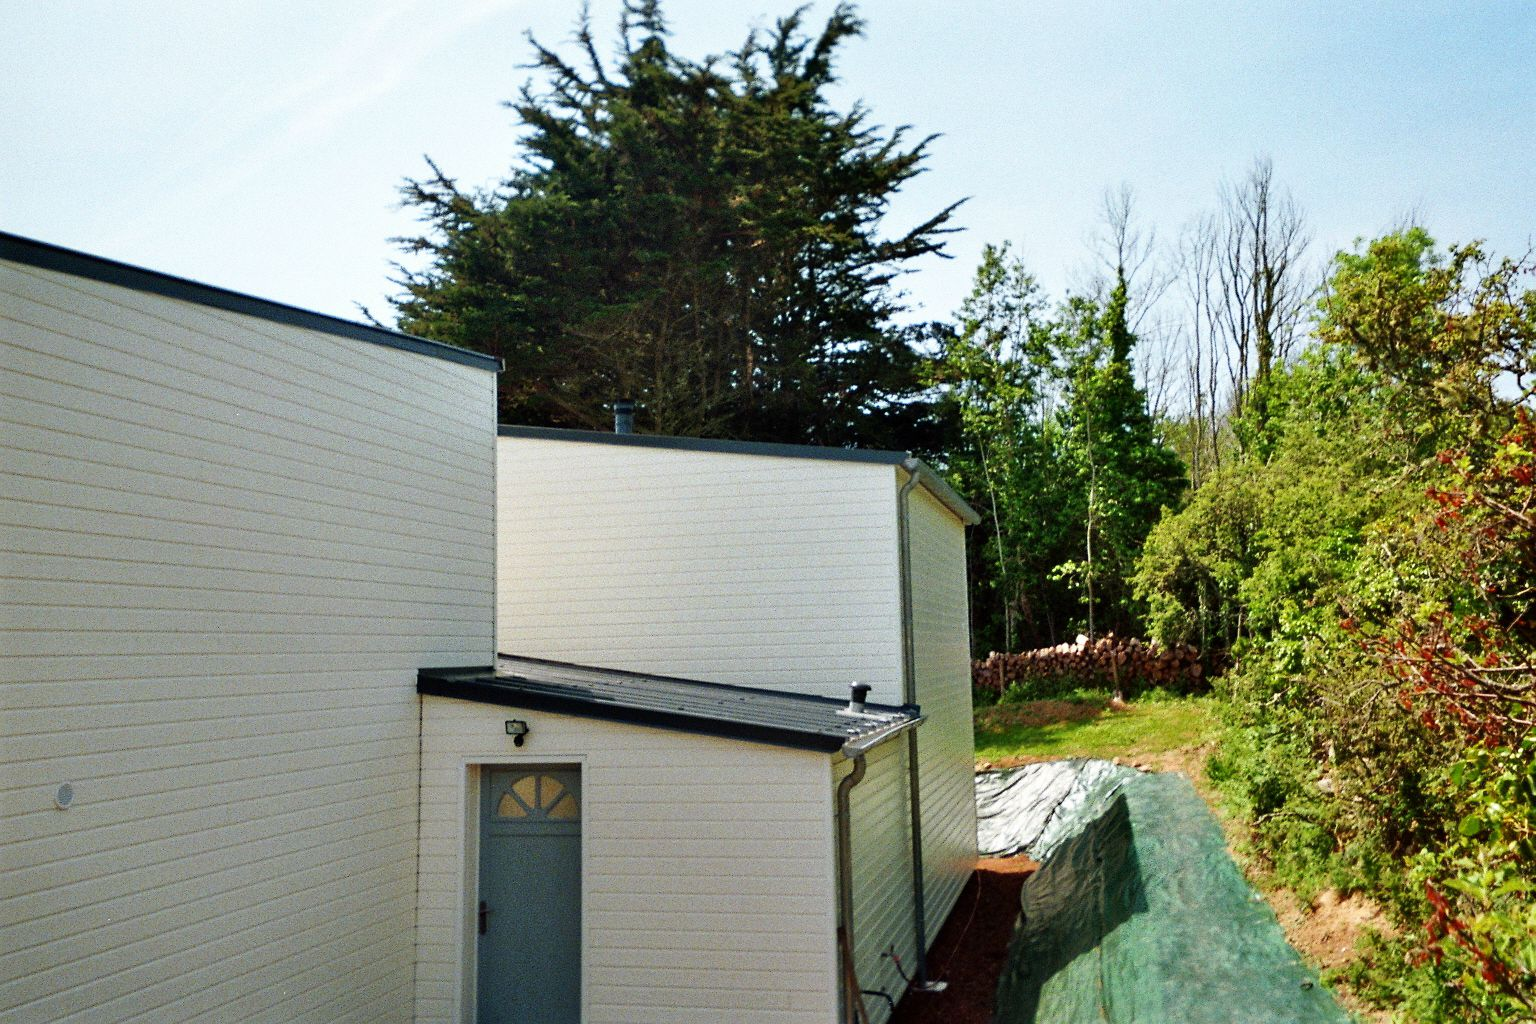 L 39 entr e de la maison par l 39 arri re c t sas photo de for A cote de la maison